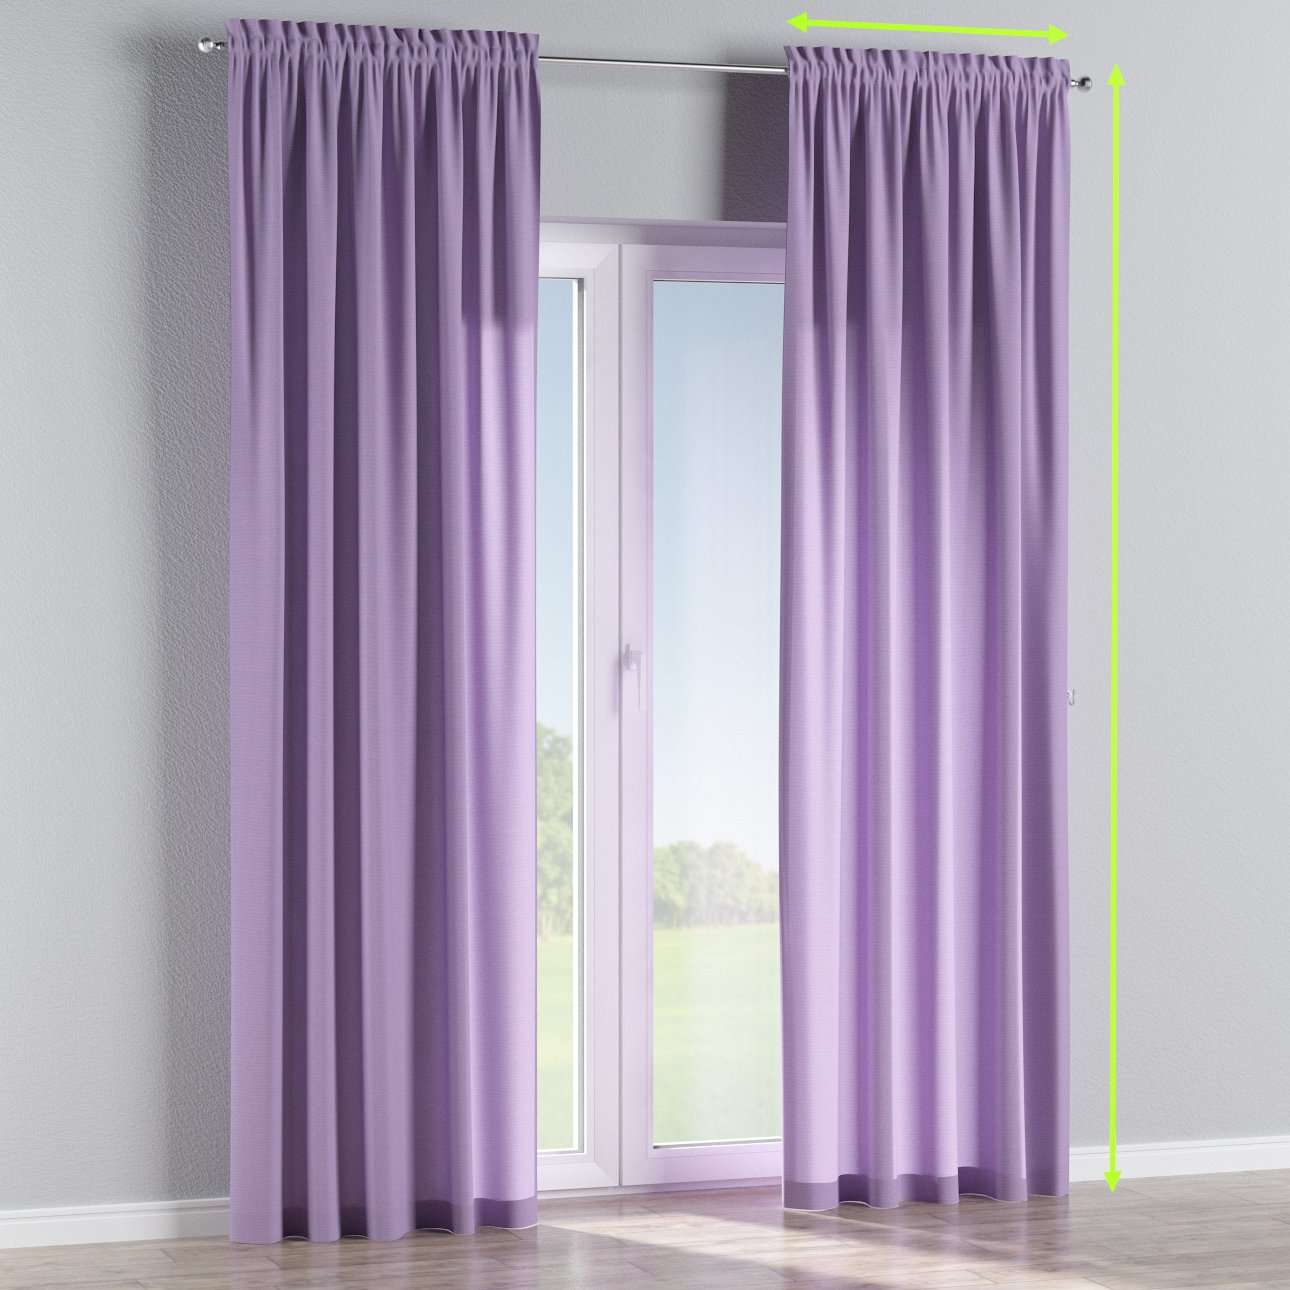 Slot and frill lined curtains in collection Jupiter, fabric: 127-74